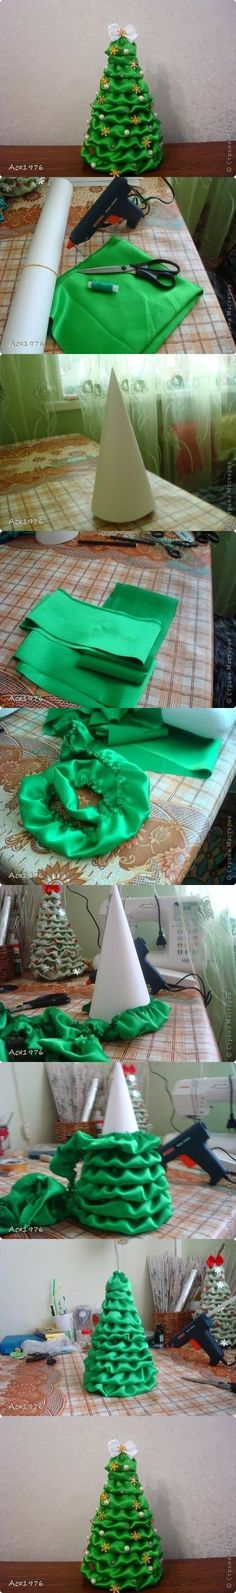 DIY Fabric Christmas Tree DIY Projects / UsefulDIY.com